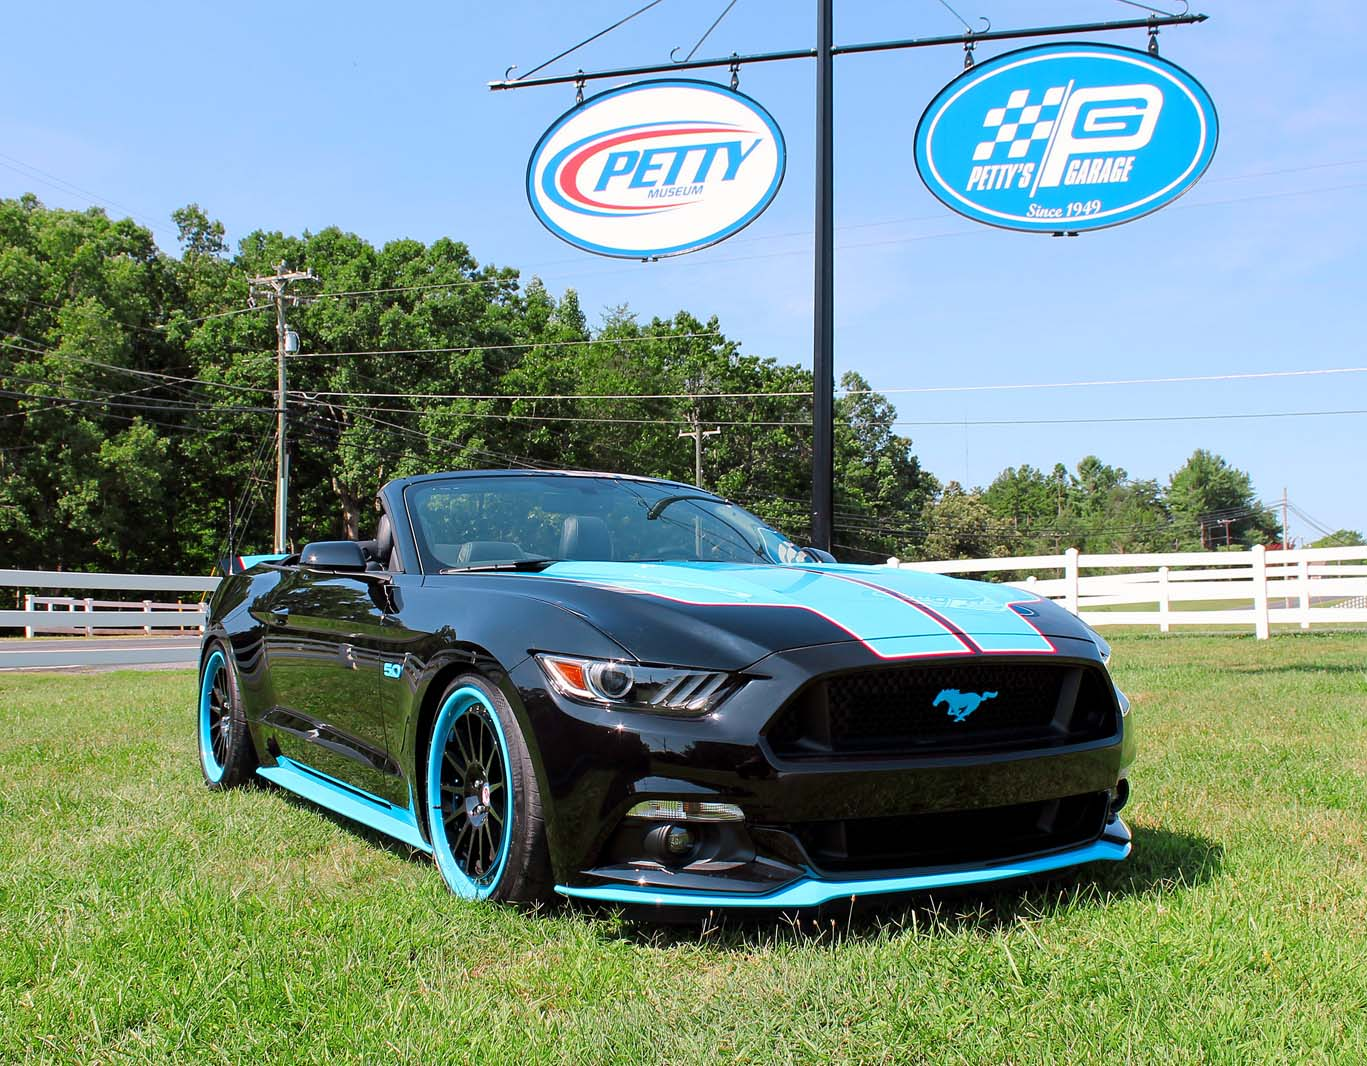 2015 Mustang Gt 0 60 >> New Petty S Garage Mustang Gt King Edition Boasts Up To 727 Hp